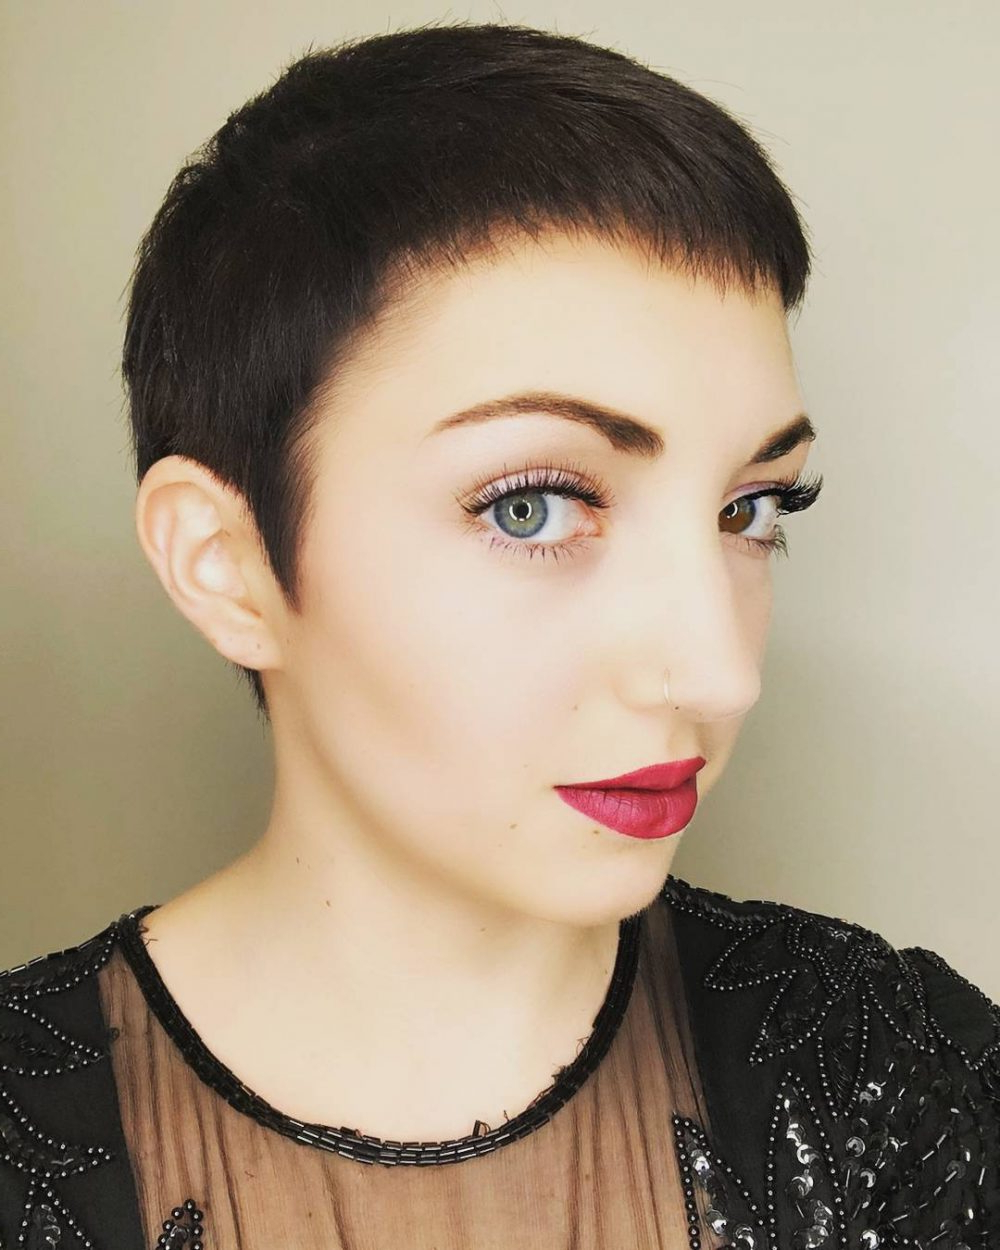 27 Very Short Haircuts You Have To See In 2018 Pertaining To Super Short Hairstyles For Black Women (View 8 of 25)